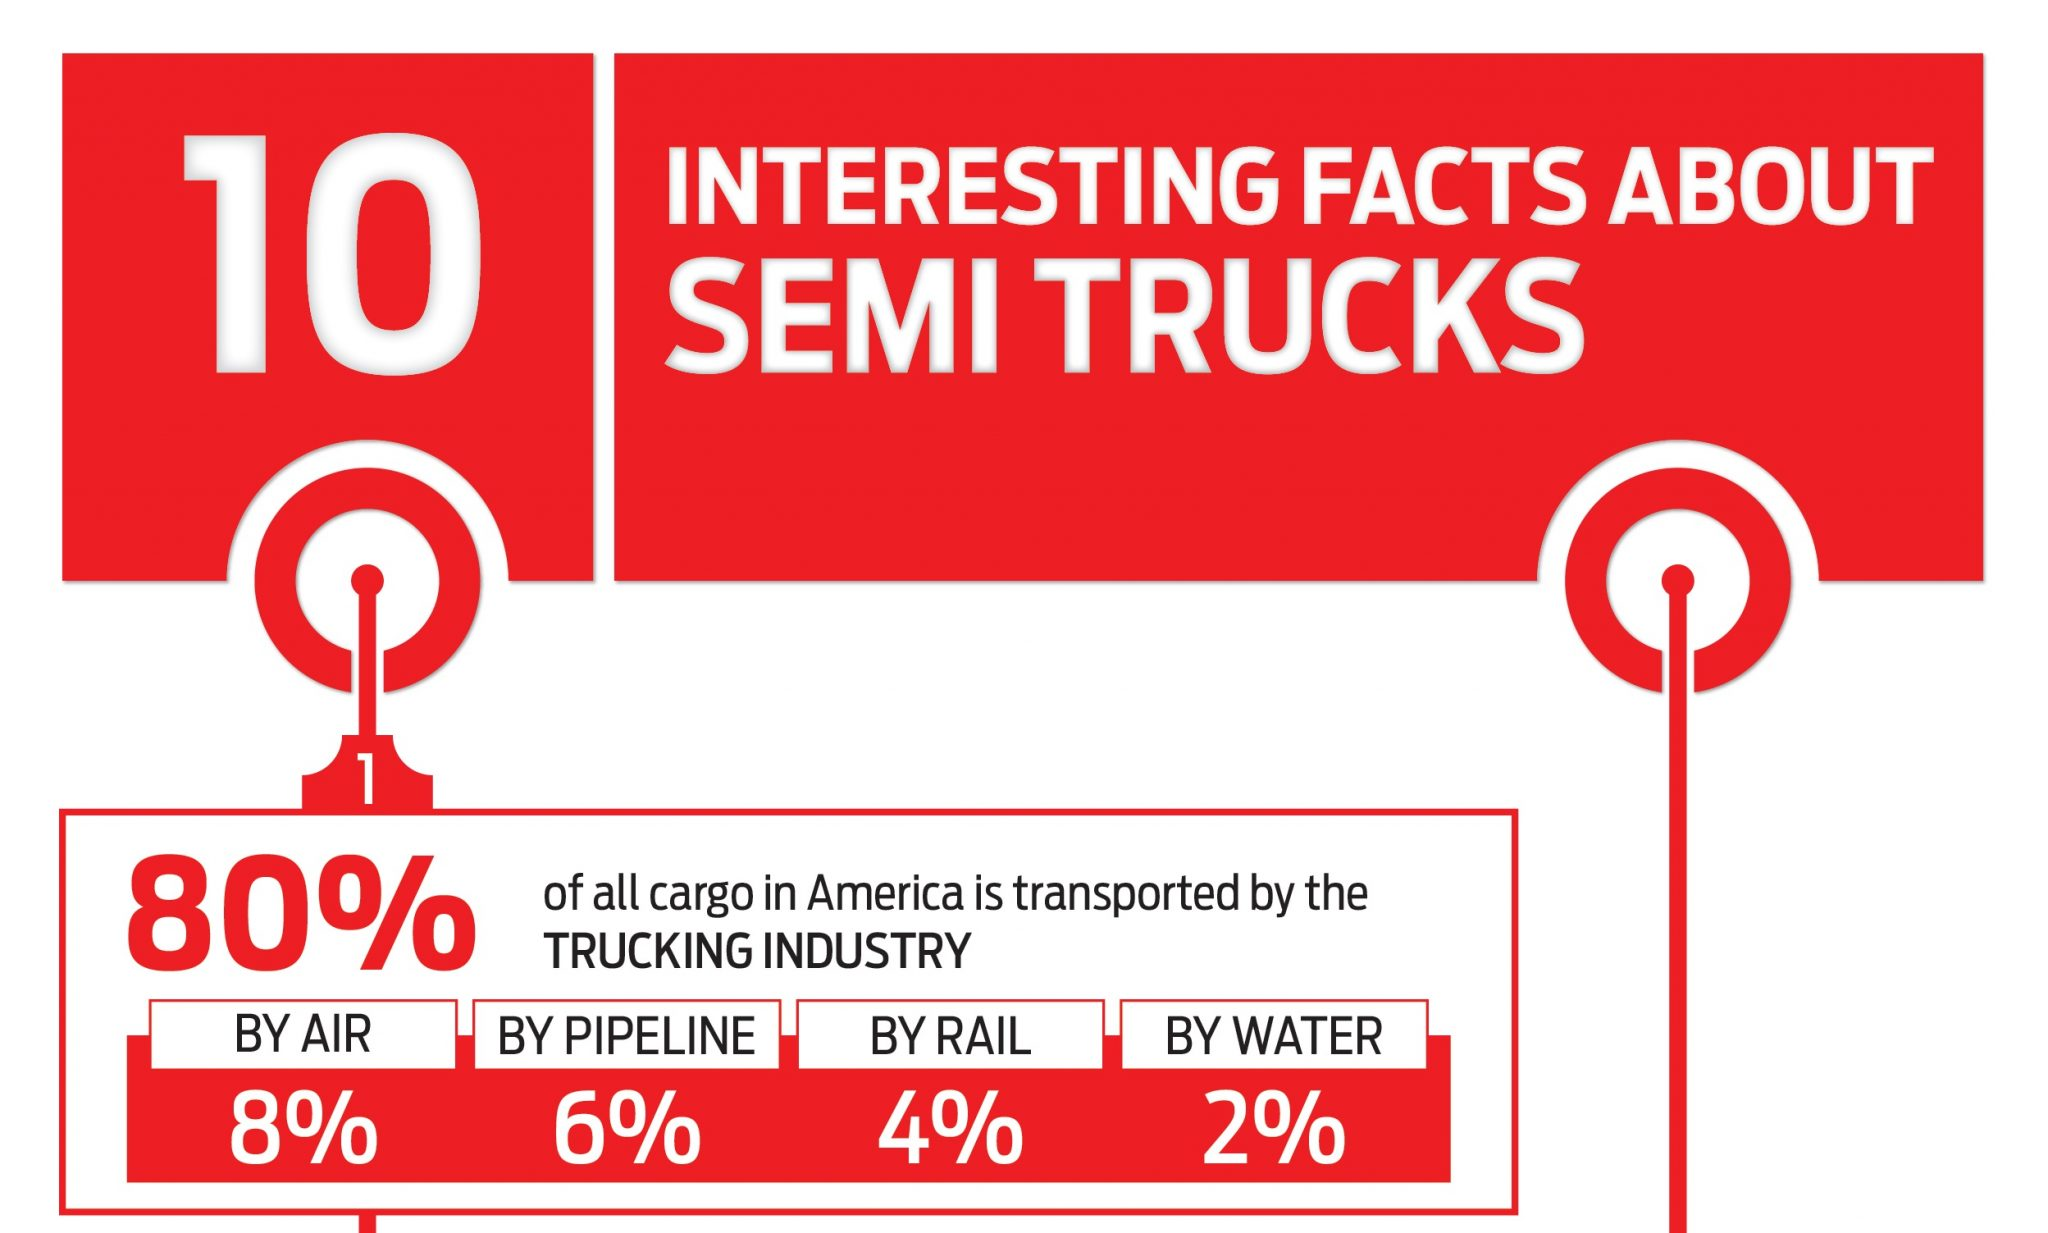 INFOGRAPHIC: 10 Interesting Facts About Semi Trucks